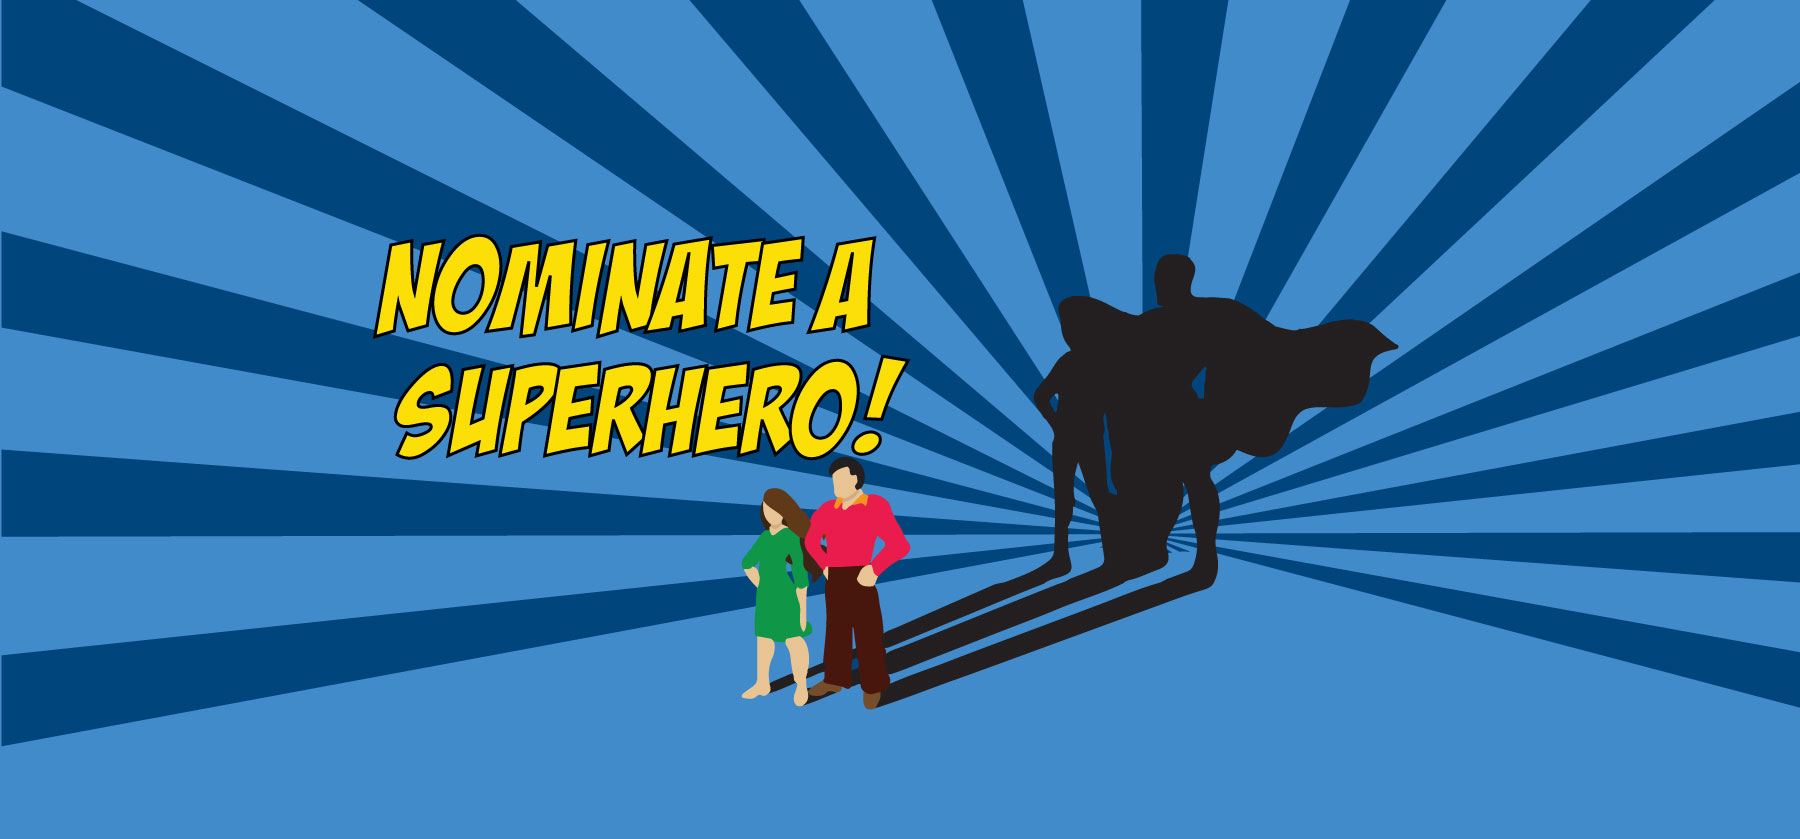 superhero-nominate-web-banner